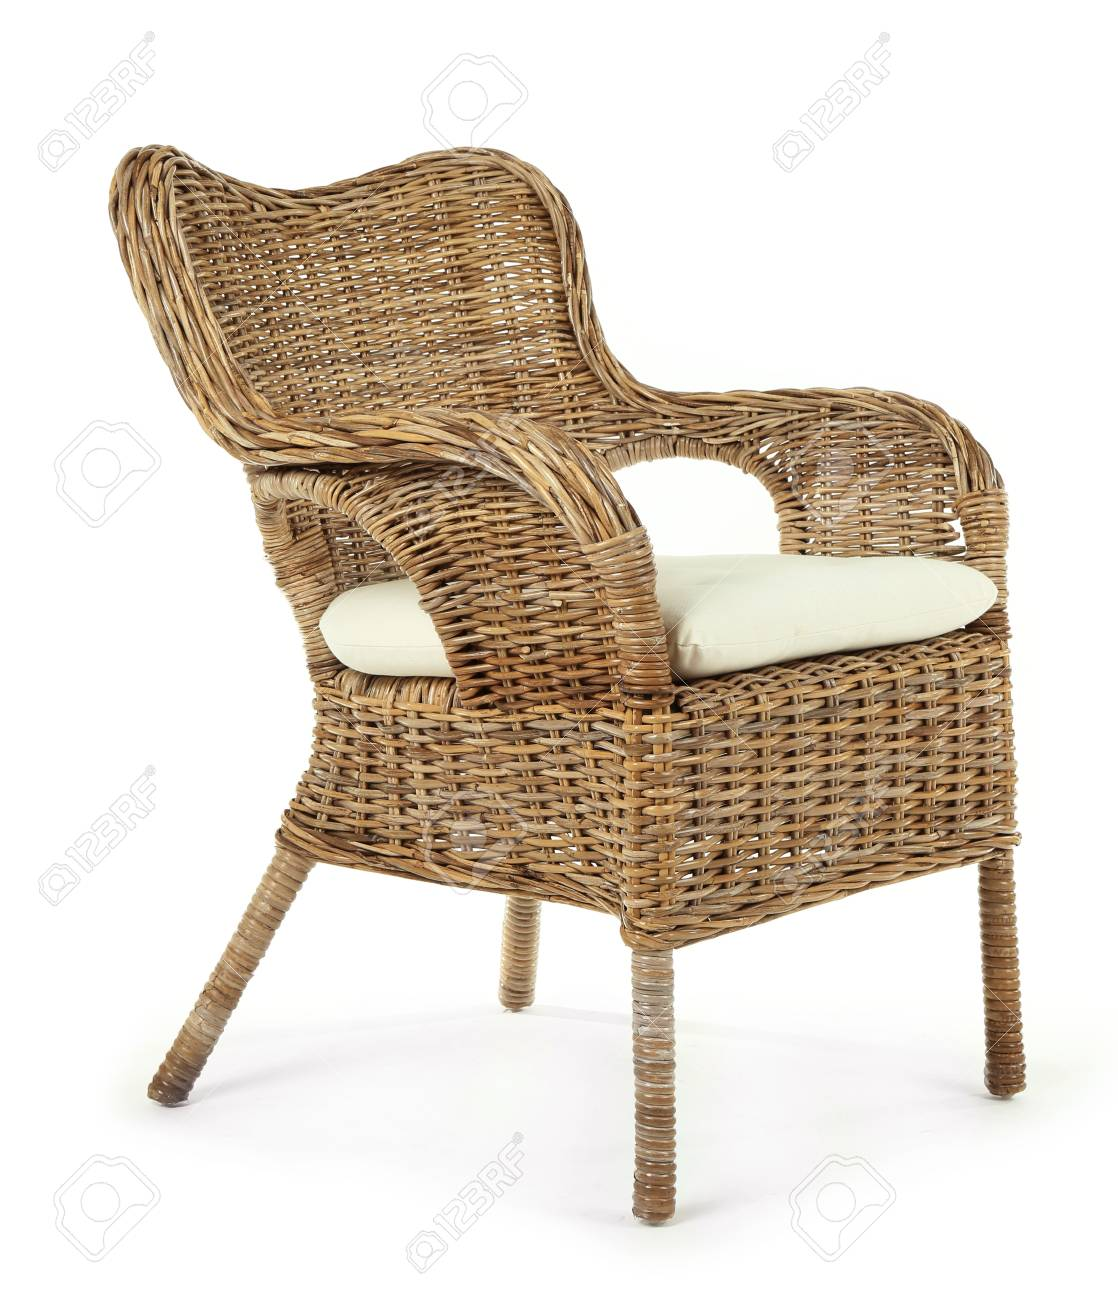 comfortable wicker chairs ikea ektorp jennylund chair cover isolated on white stock photo picture and 95836646